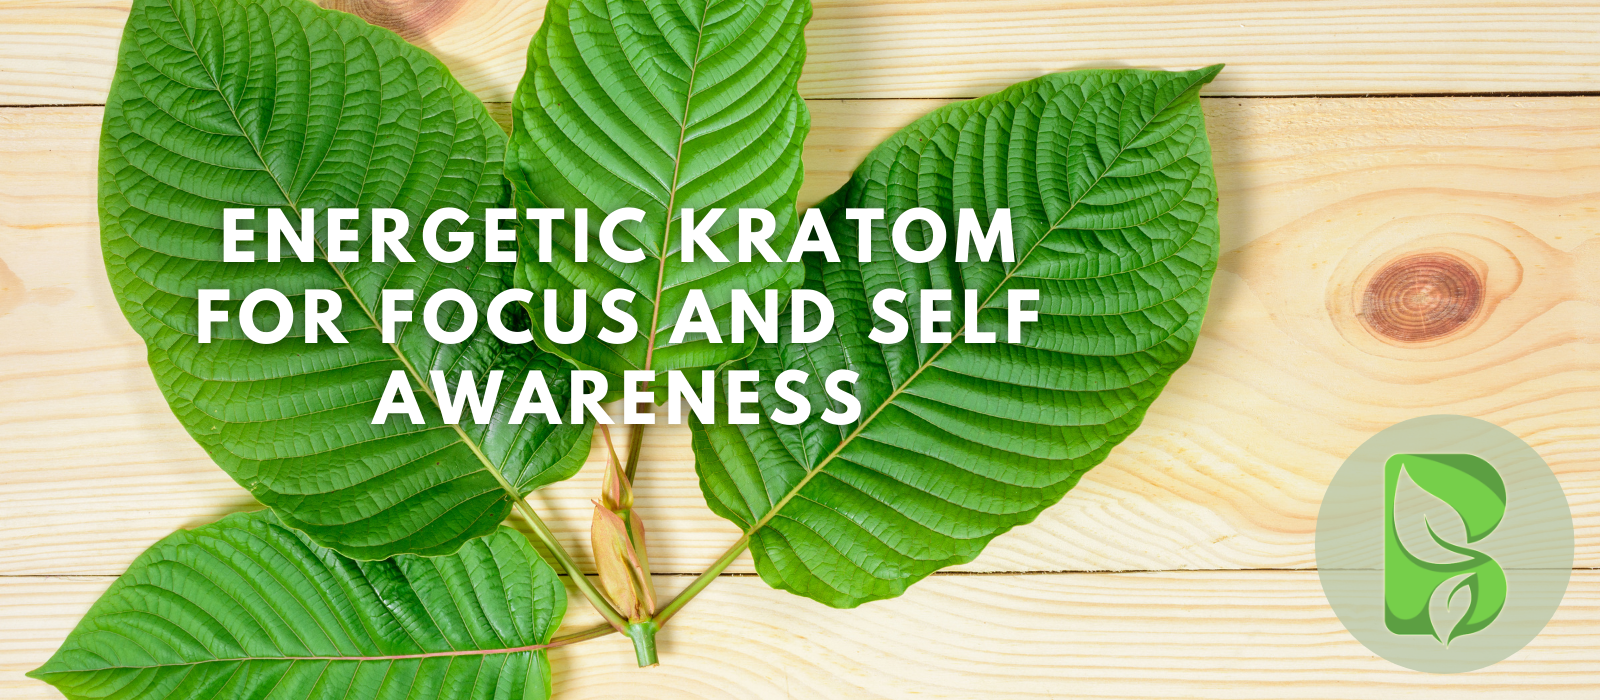 Energetic Kratom For Focus And Self Awareness